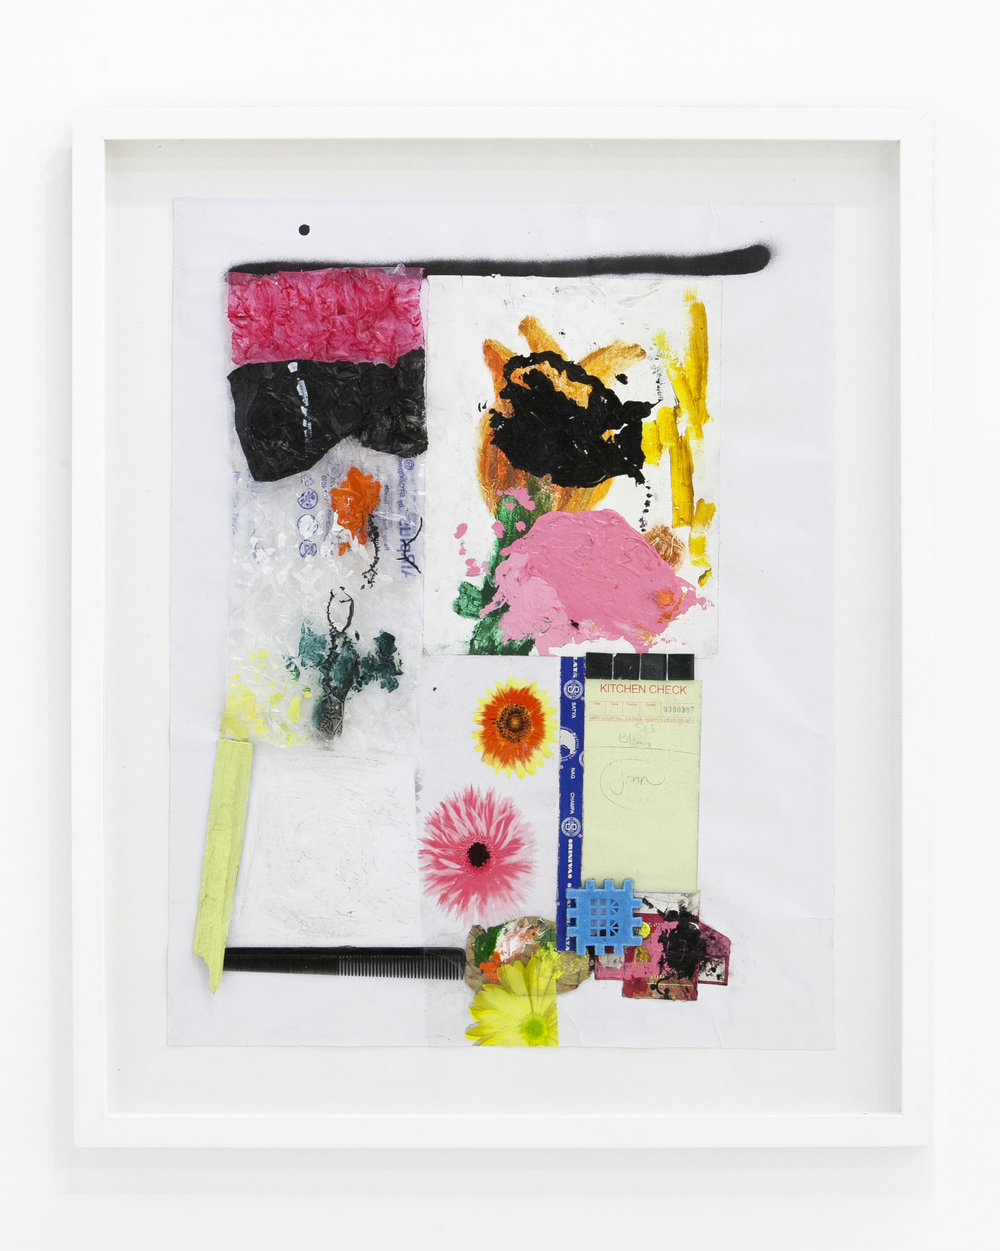 "Jan Gatewood -  ""Cypress Park""  Acrylic, Spray Paint, Nail Polish, Plastic, Cardboard, Wood, Paper, Comb, Glass, Tiles, Spiderweb, Tablecloth, & Gesso on Paper. 16.5 x 14 Inches. Framed. 2018."